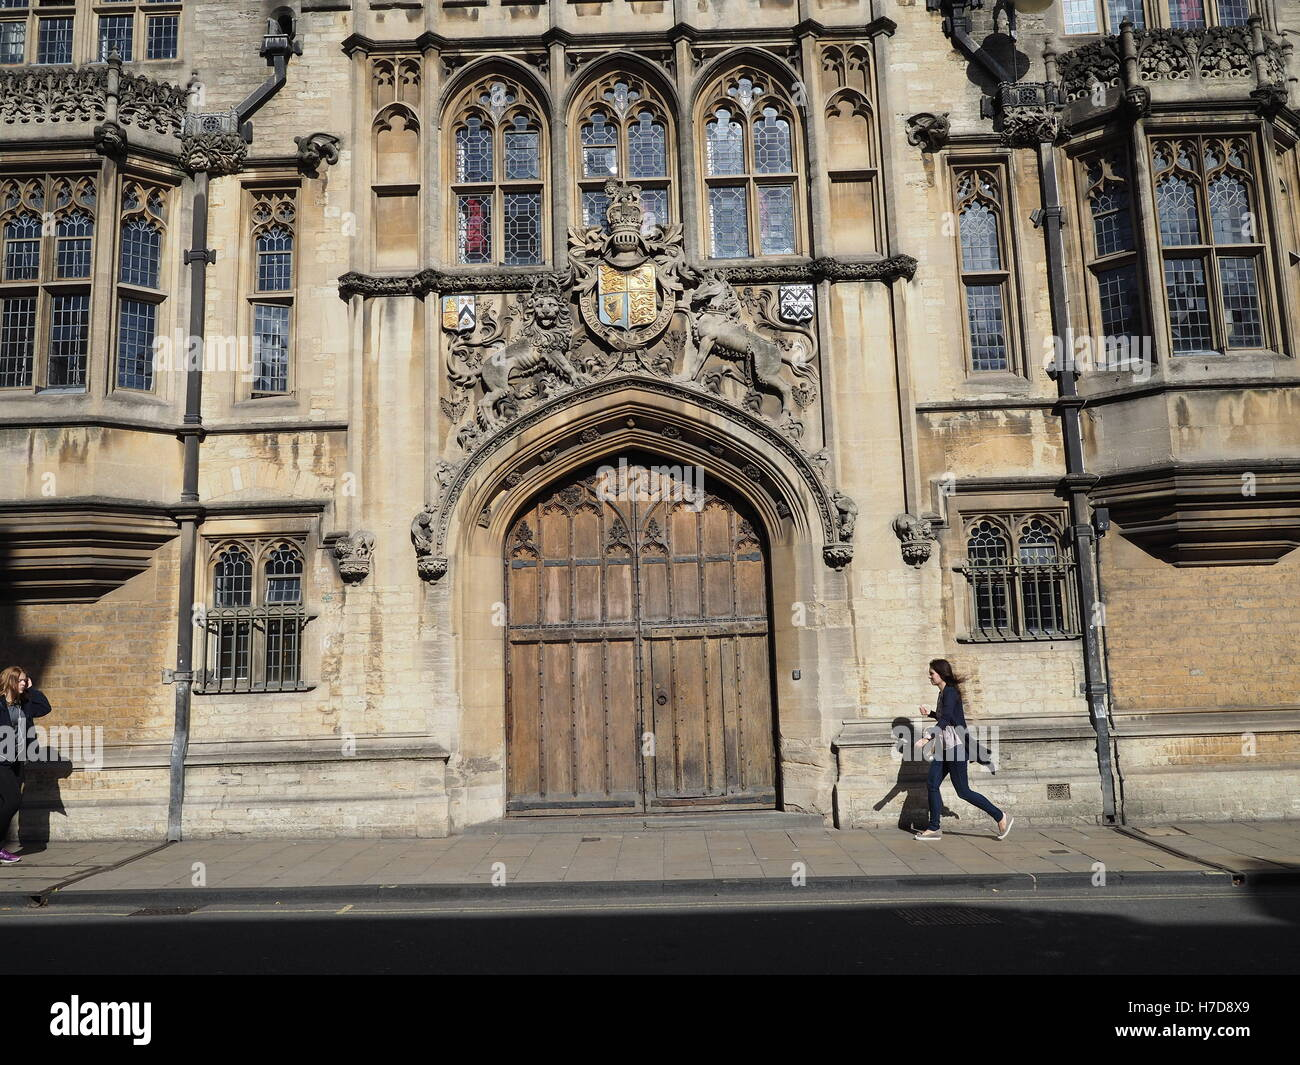 Oxford University, Brasenose College, High Street - Stock Image